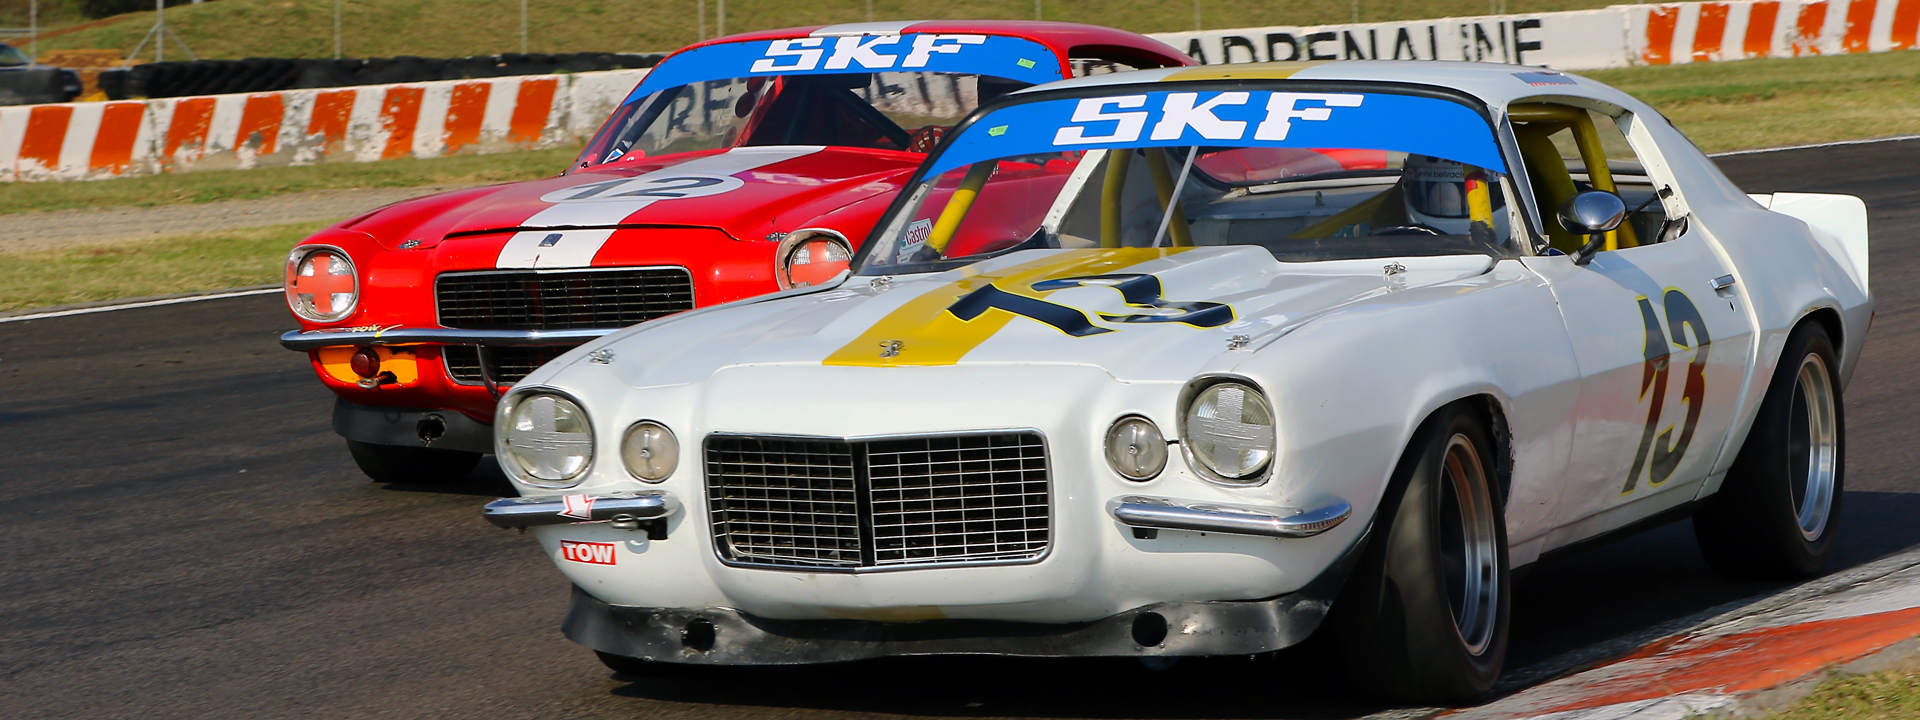 Nostalgia is big winner at Zwartkops Raceway - Historic Tour - 9 April 2016